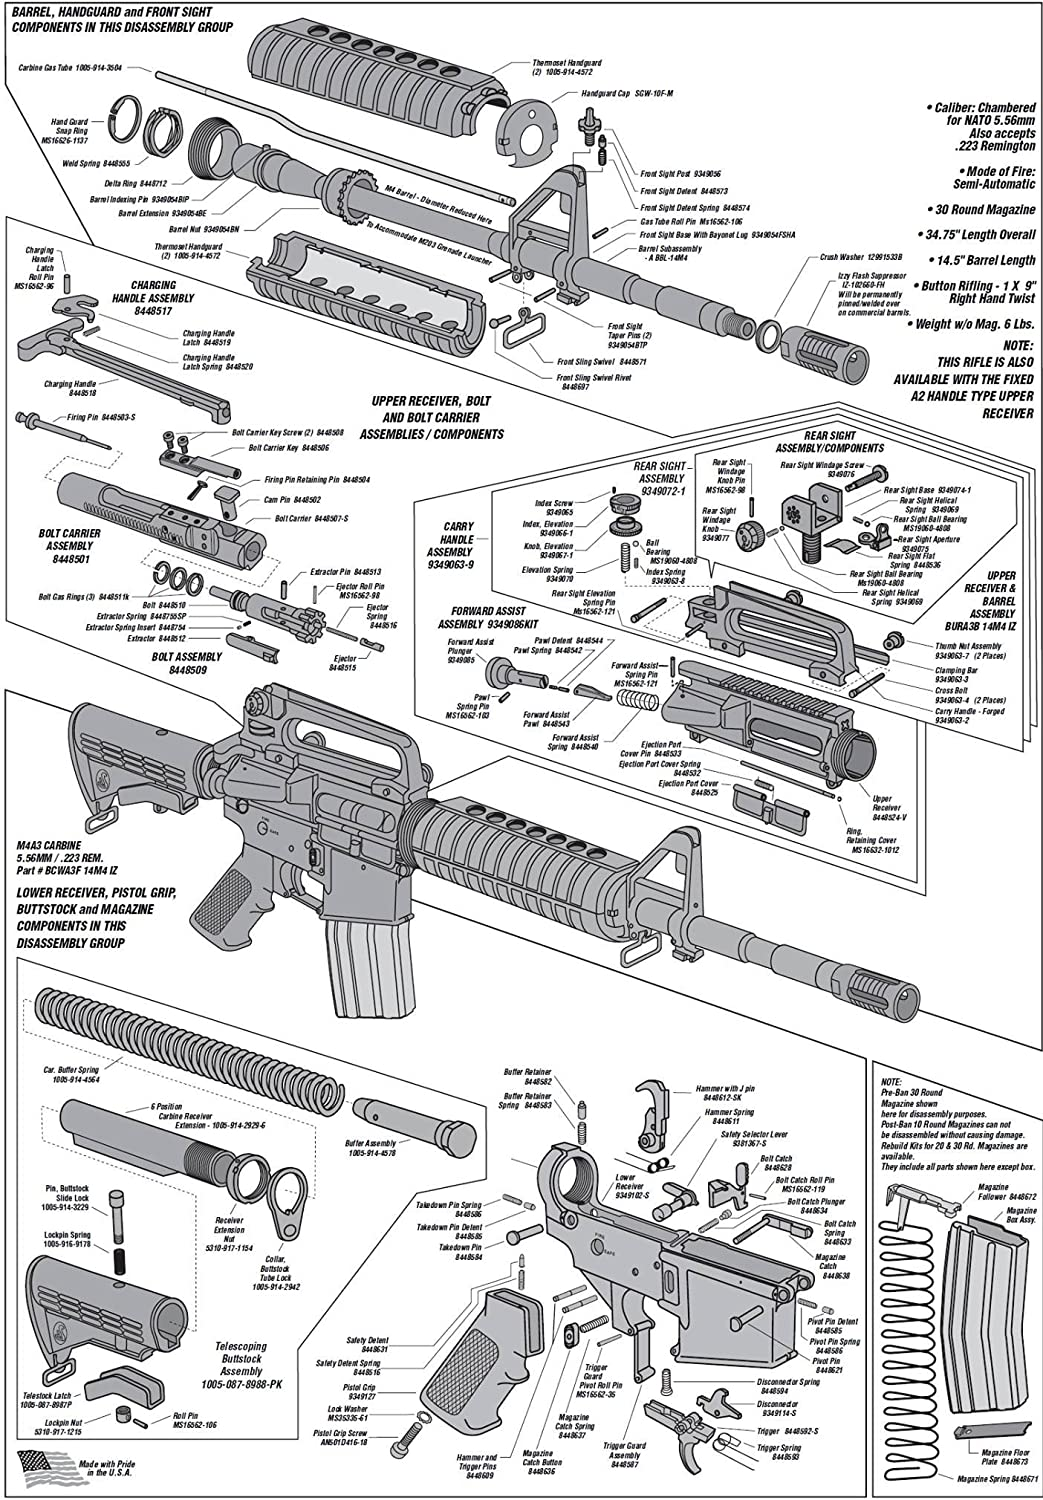 [GJFJ_338]  Amazon.com: AR-15 DIAGRAM SCHEMATIC GLOSSY POSTER PICTURE PHOTO parts gun  rifle weapon military: Office Products | Dpms Schematics |  | Amazon.com